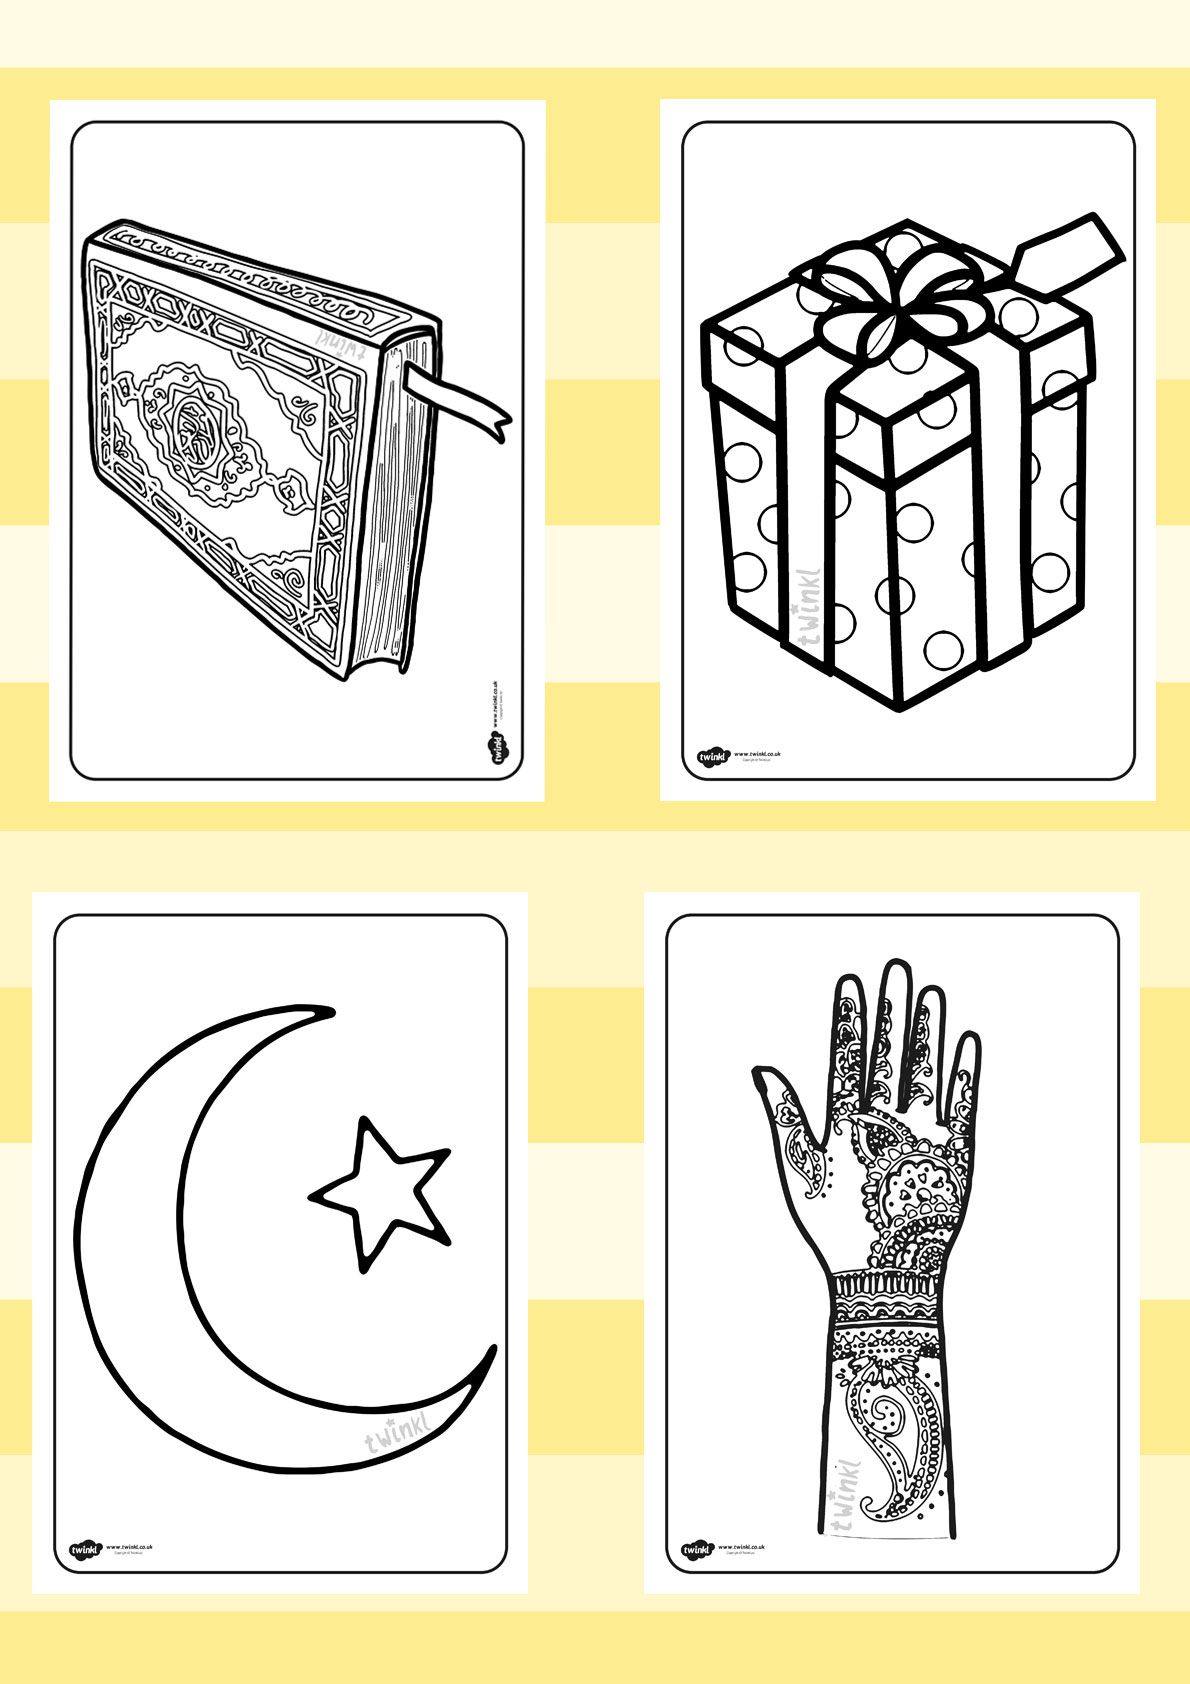 Christmas colouring in sheets twinkl - Twinkl Resources Eid Colouring Sheets Printable Resources For Primary Eyfs